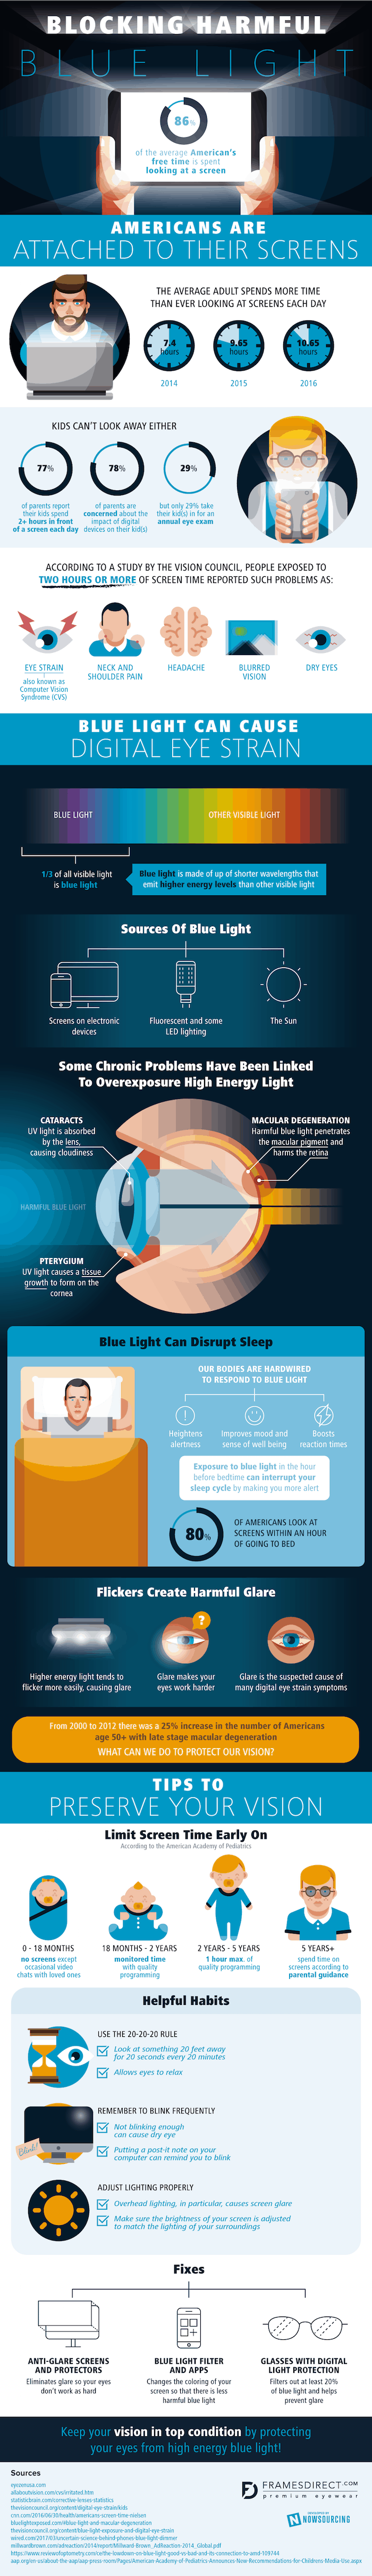 information and stats on screentime and how to block harmful blue light